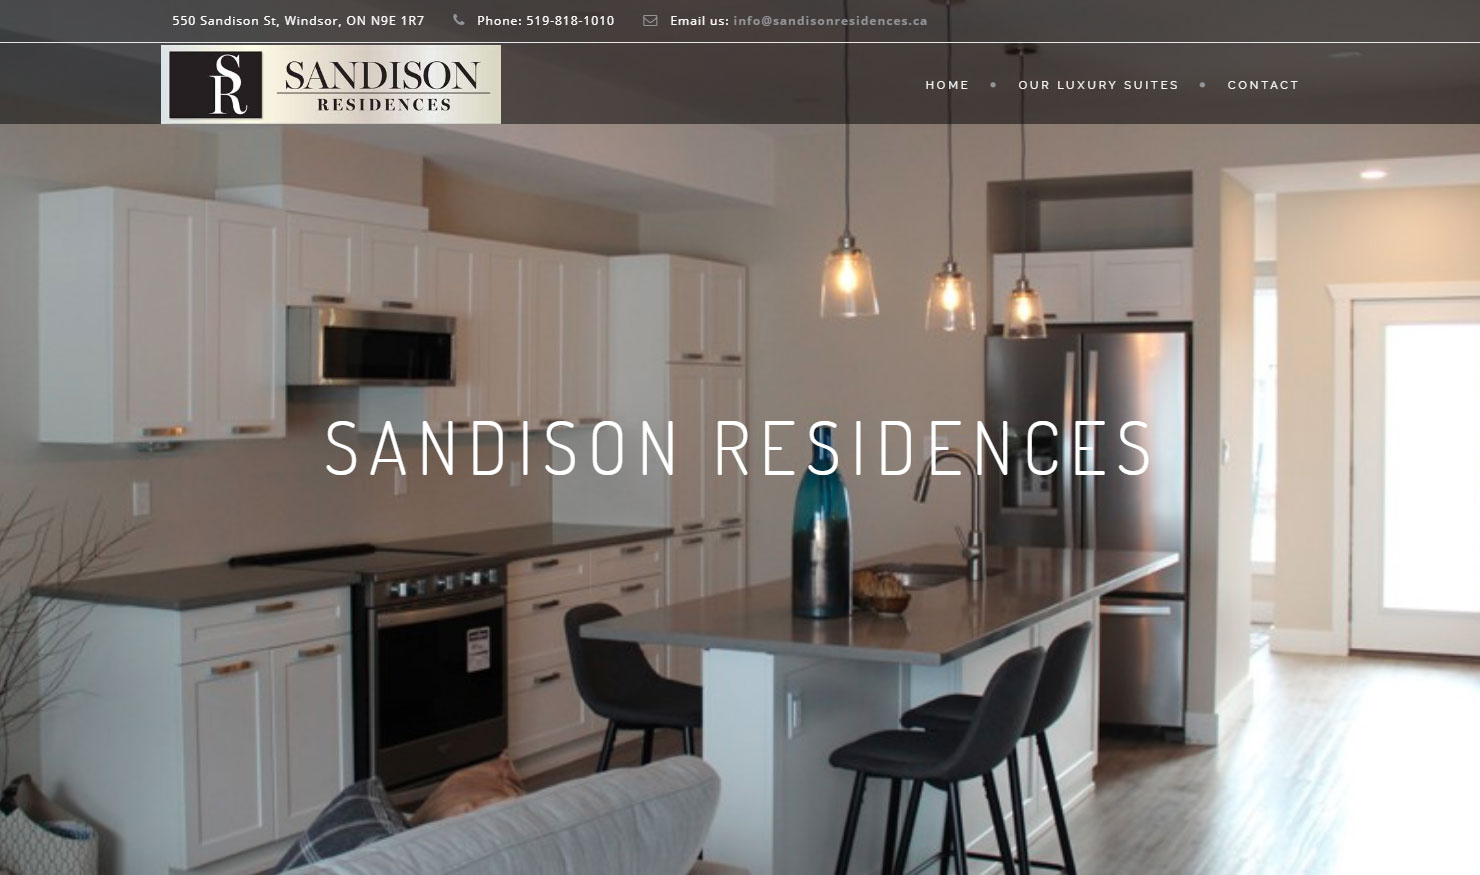 SandisonResidences-Website-Mediaduo